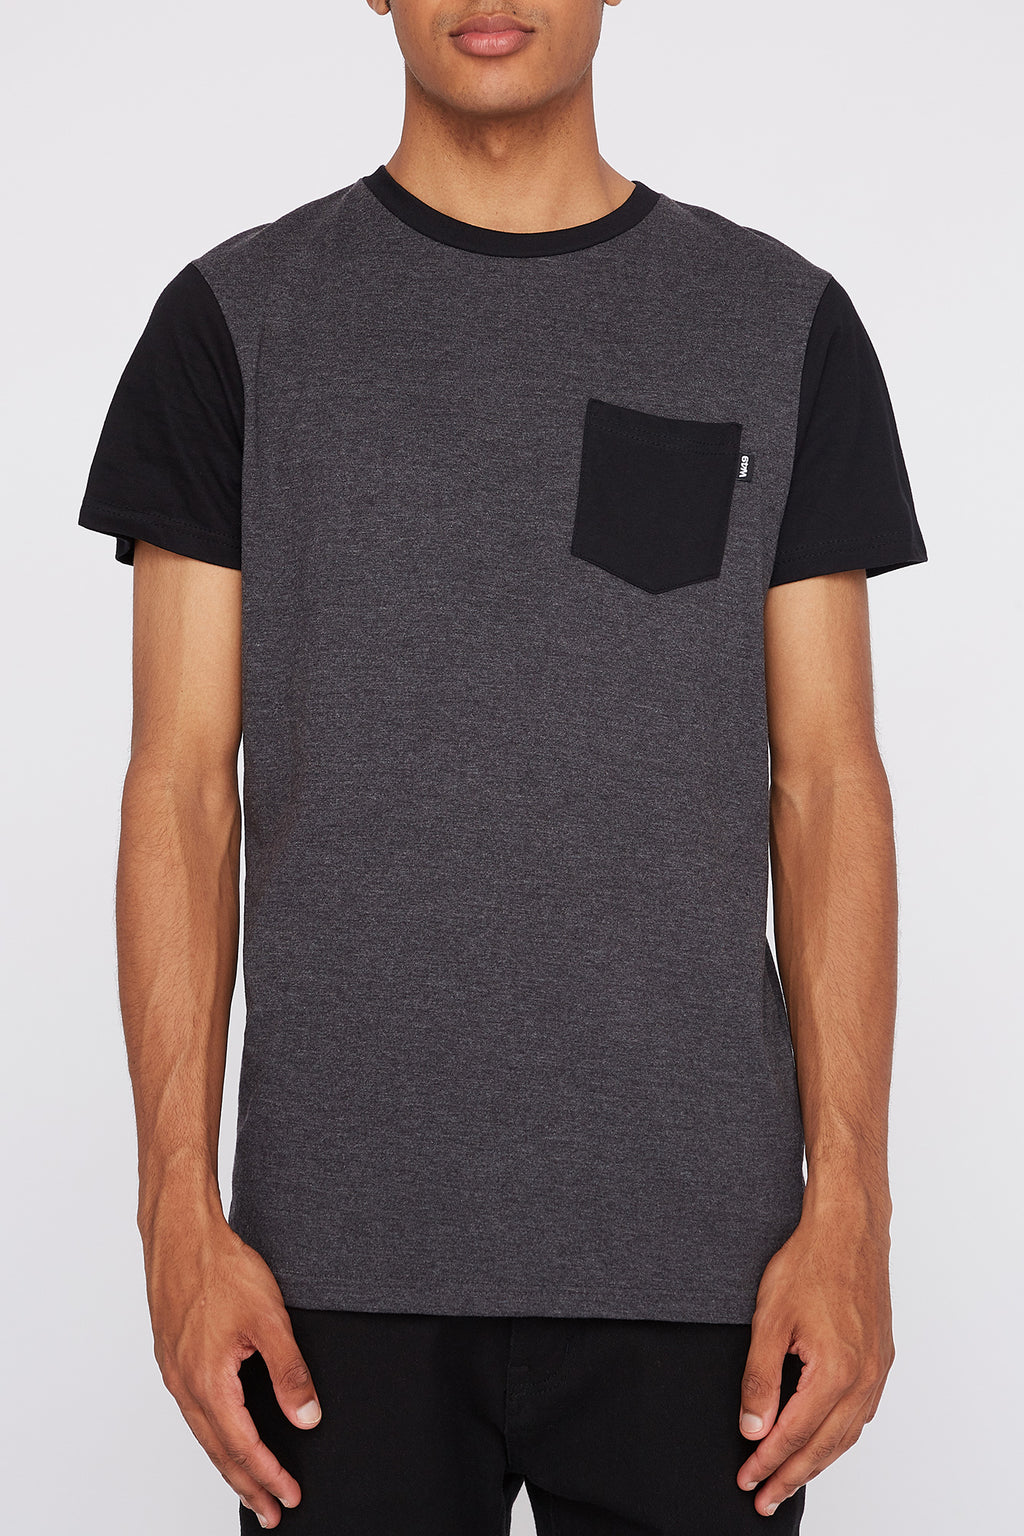 West49 Mens Contrast Colour Pocket T-Shirt